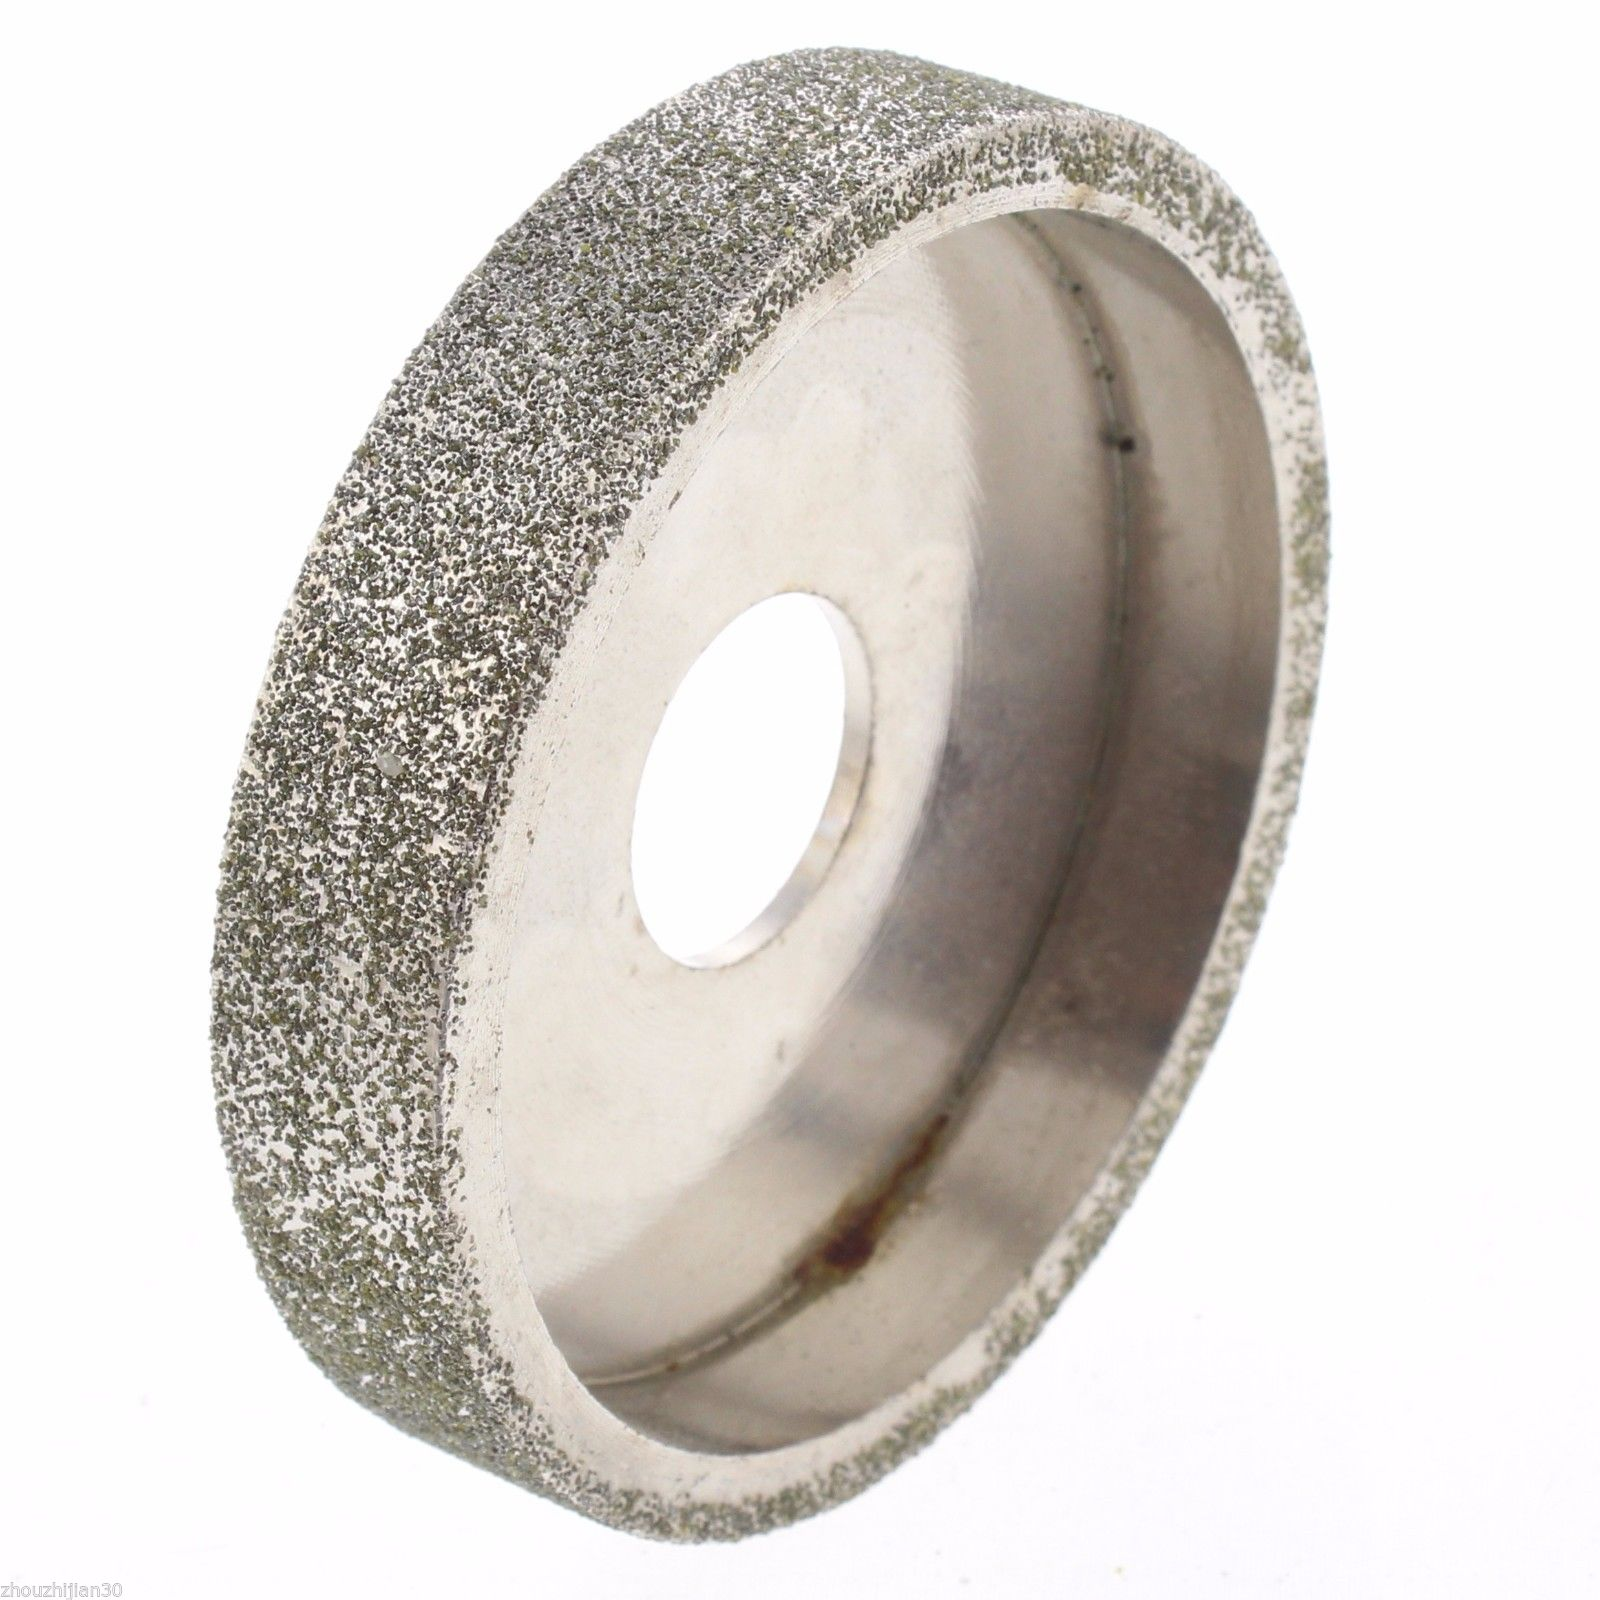 3 inch lapidary Electroplated diamond grinding wheel for Angle Grinder grit 80  ILOVETOOL v groove electroplated diamond grinding wheel for tungsten carbide stone agate megmatic material grinding e014